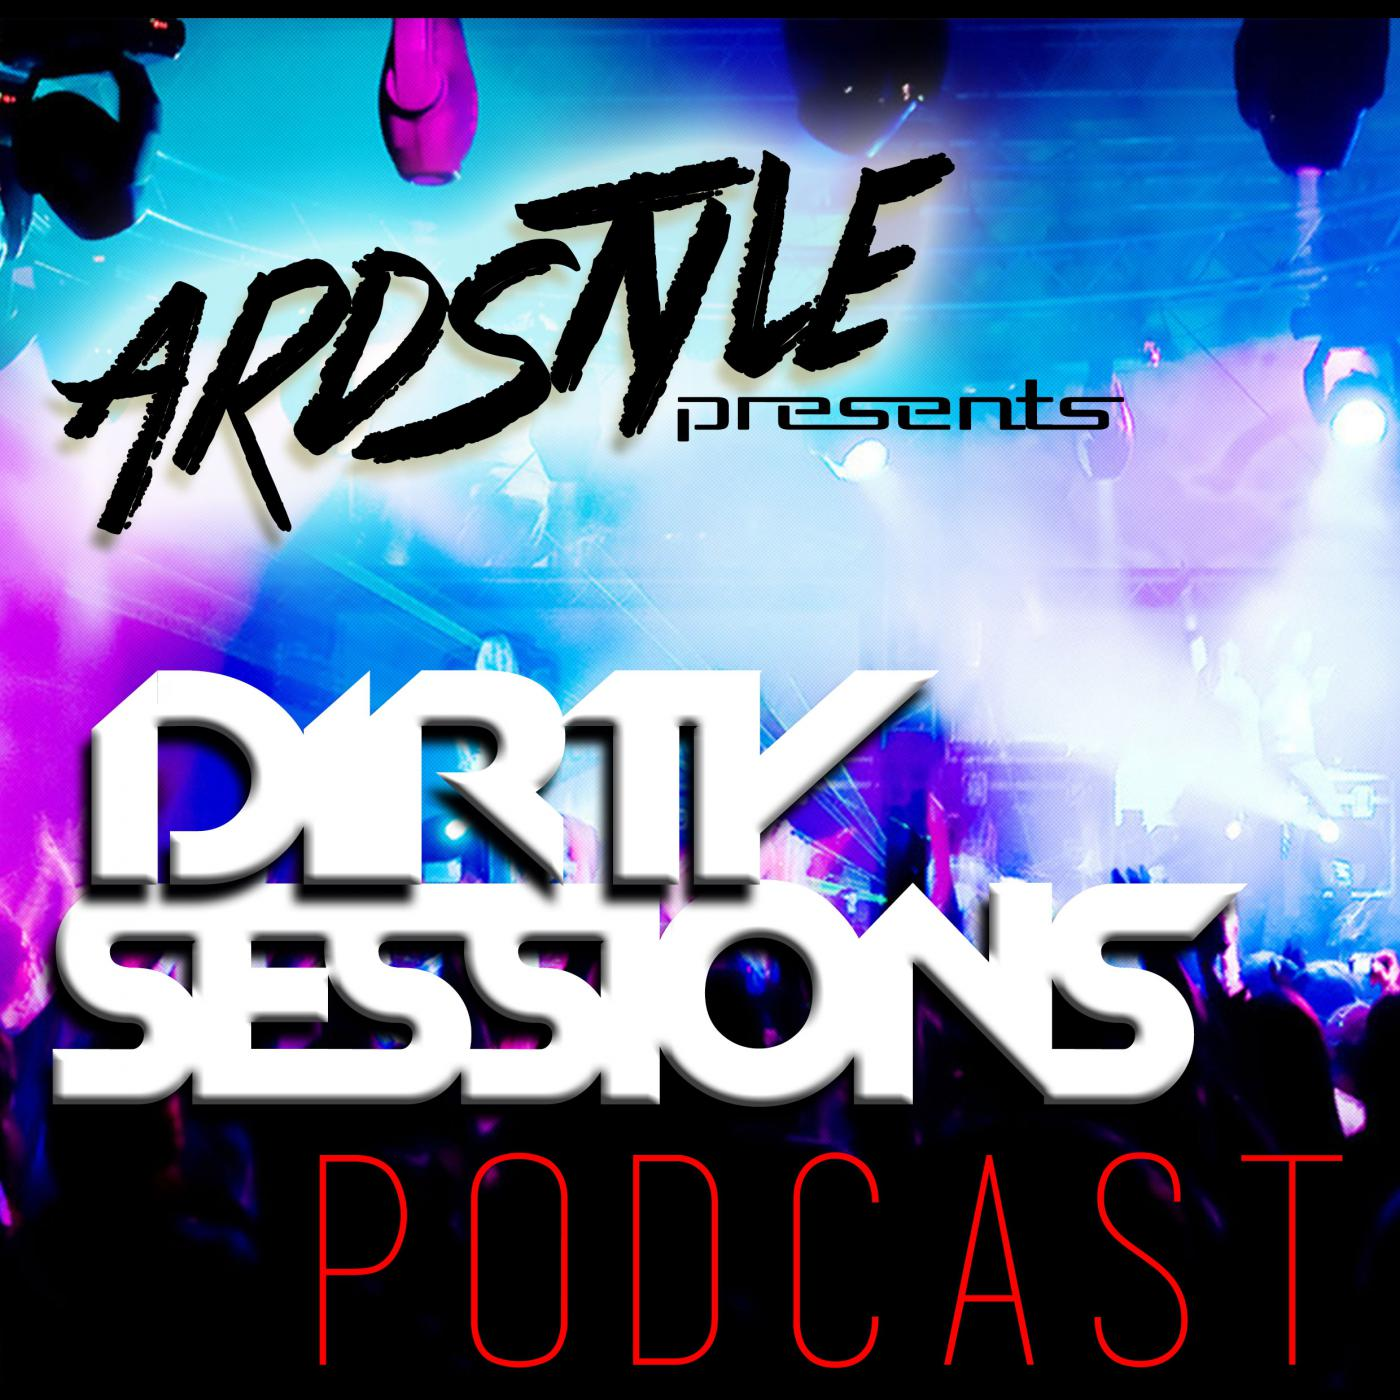 DIRTY SESSIONS with Ardstyle